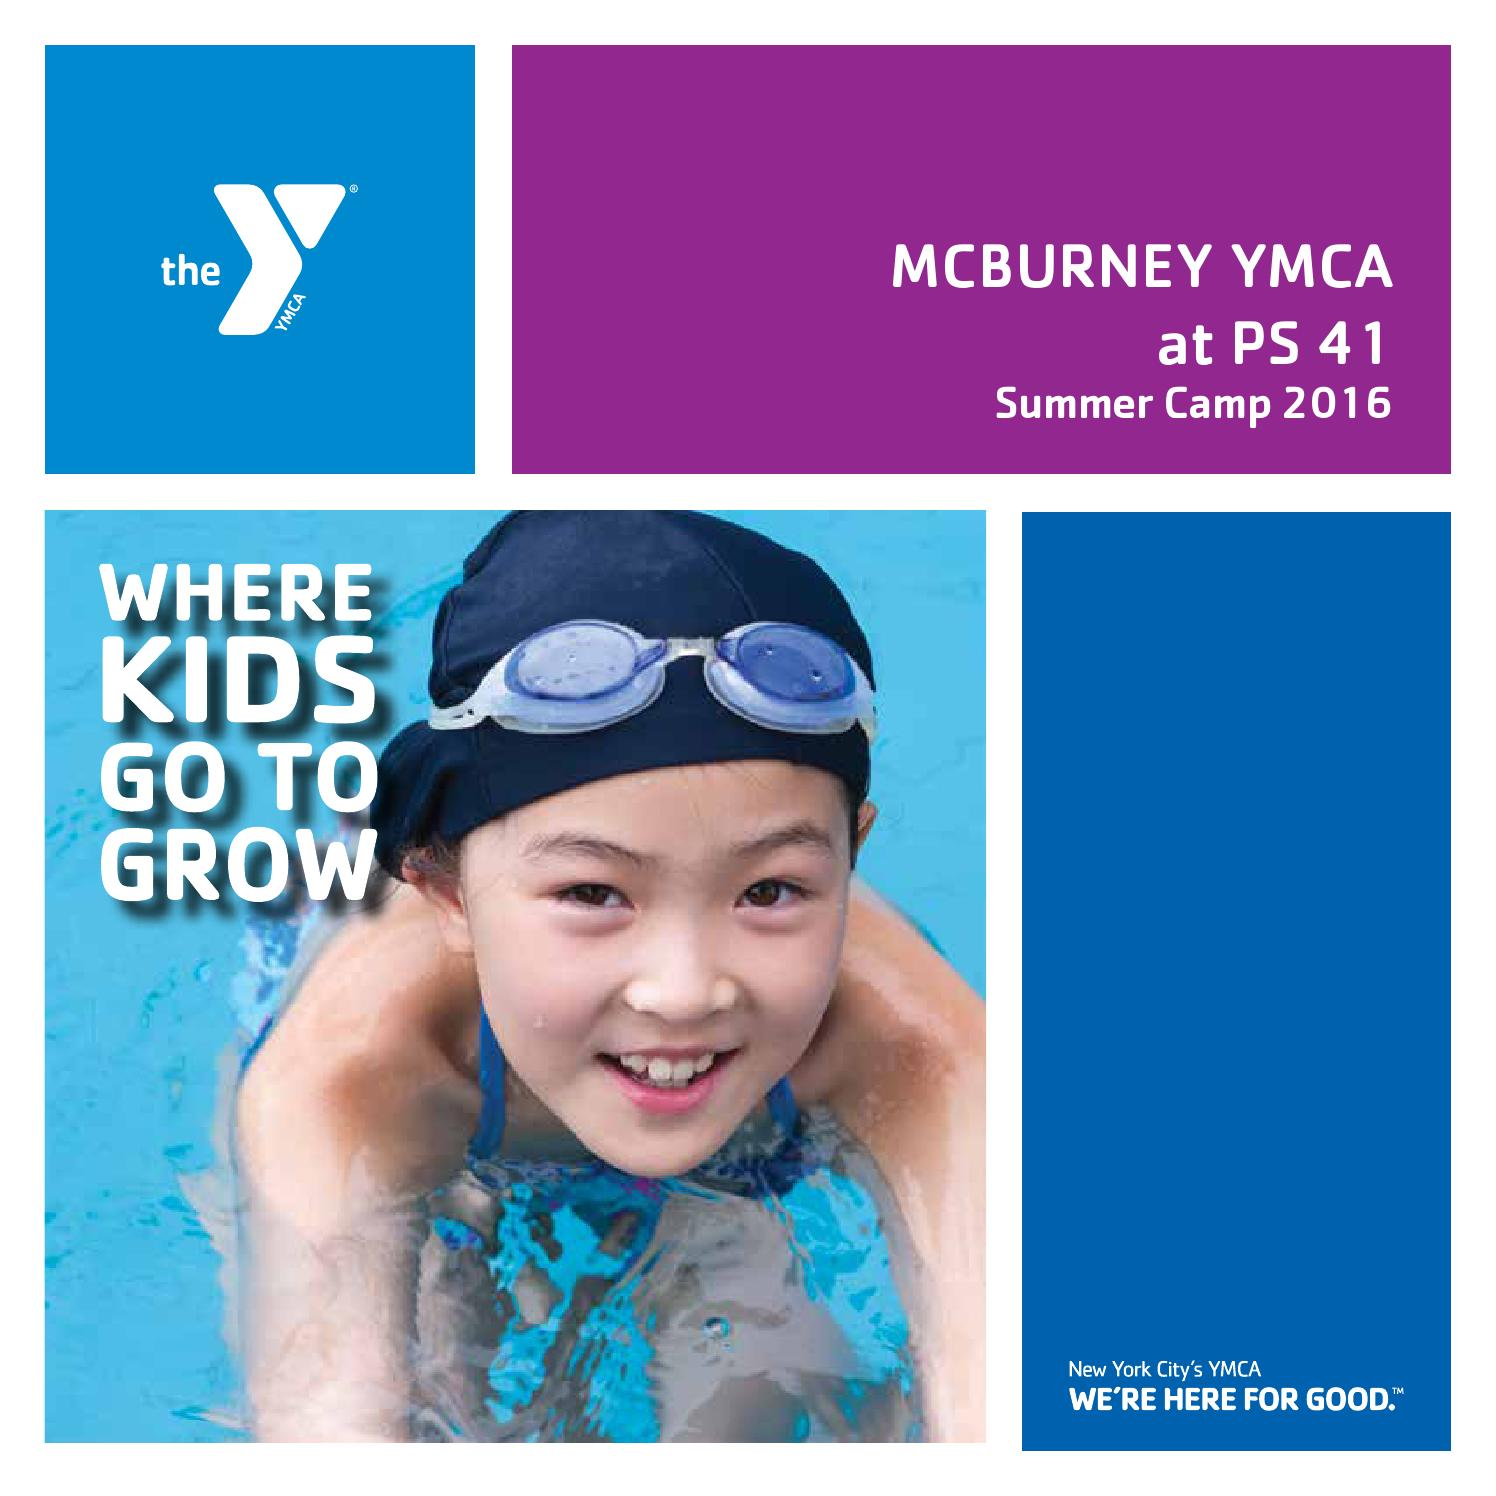 Ymca Youth Camps: McBurney YMCA Summer Camp Brochure 2016 By New York City's